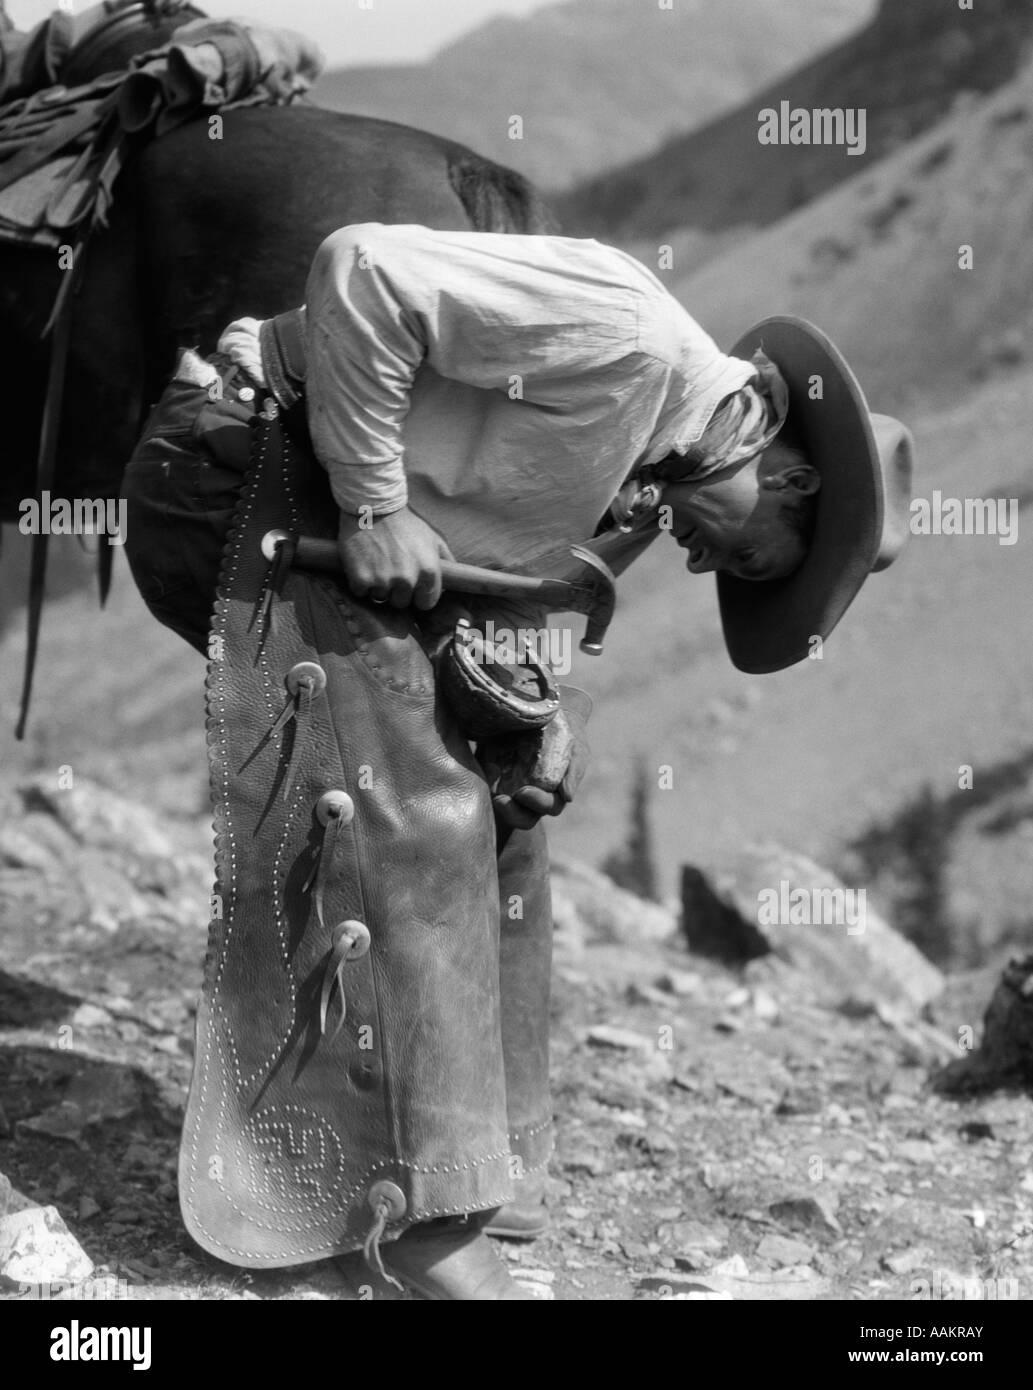 1930s COWBOY SHOEING A HORSE - Stock Image